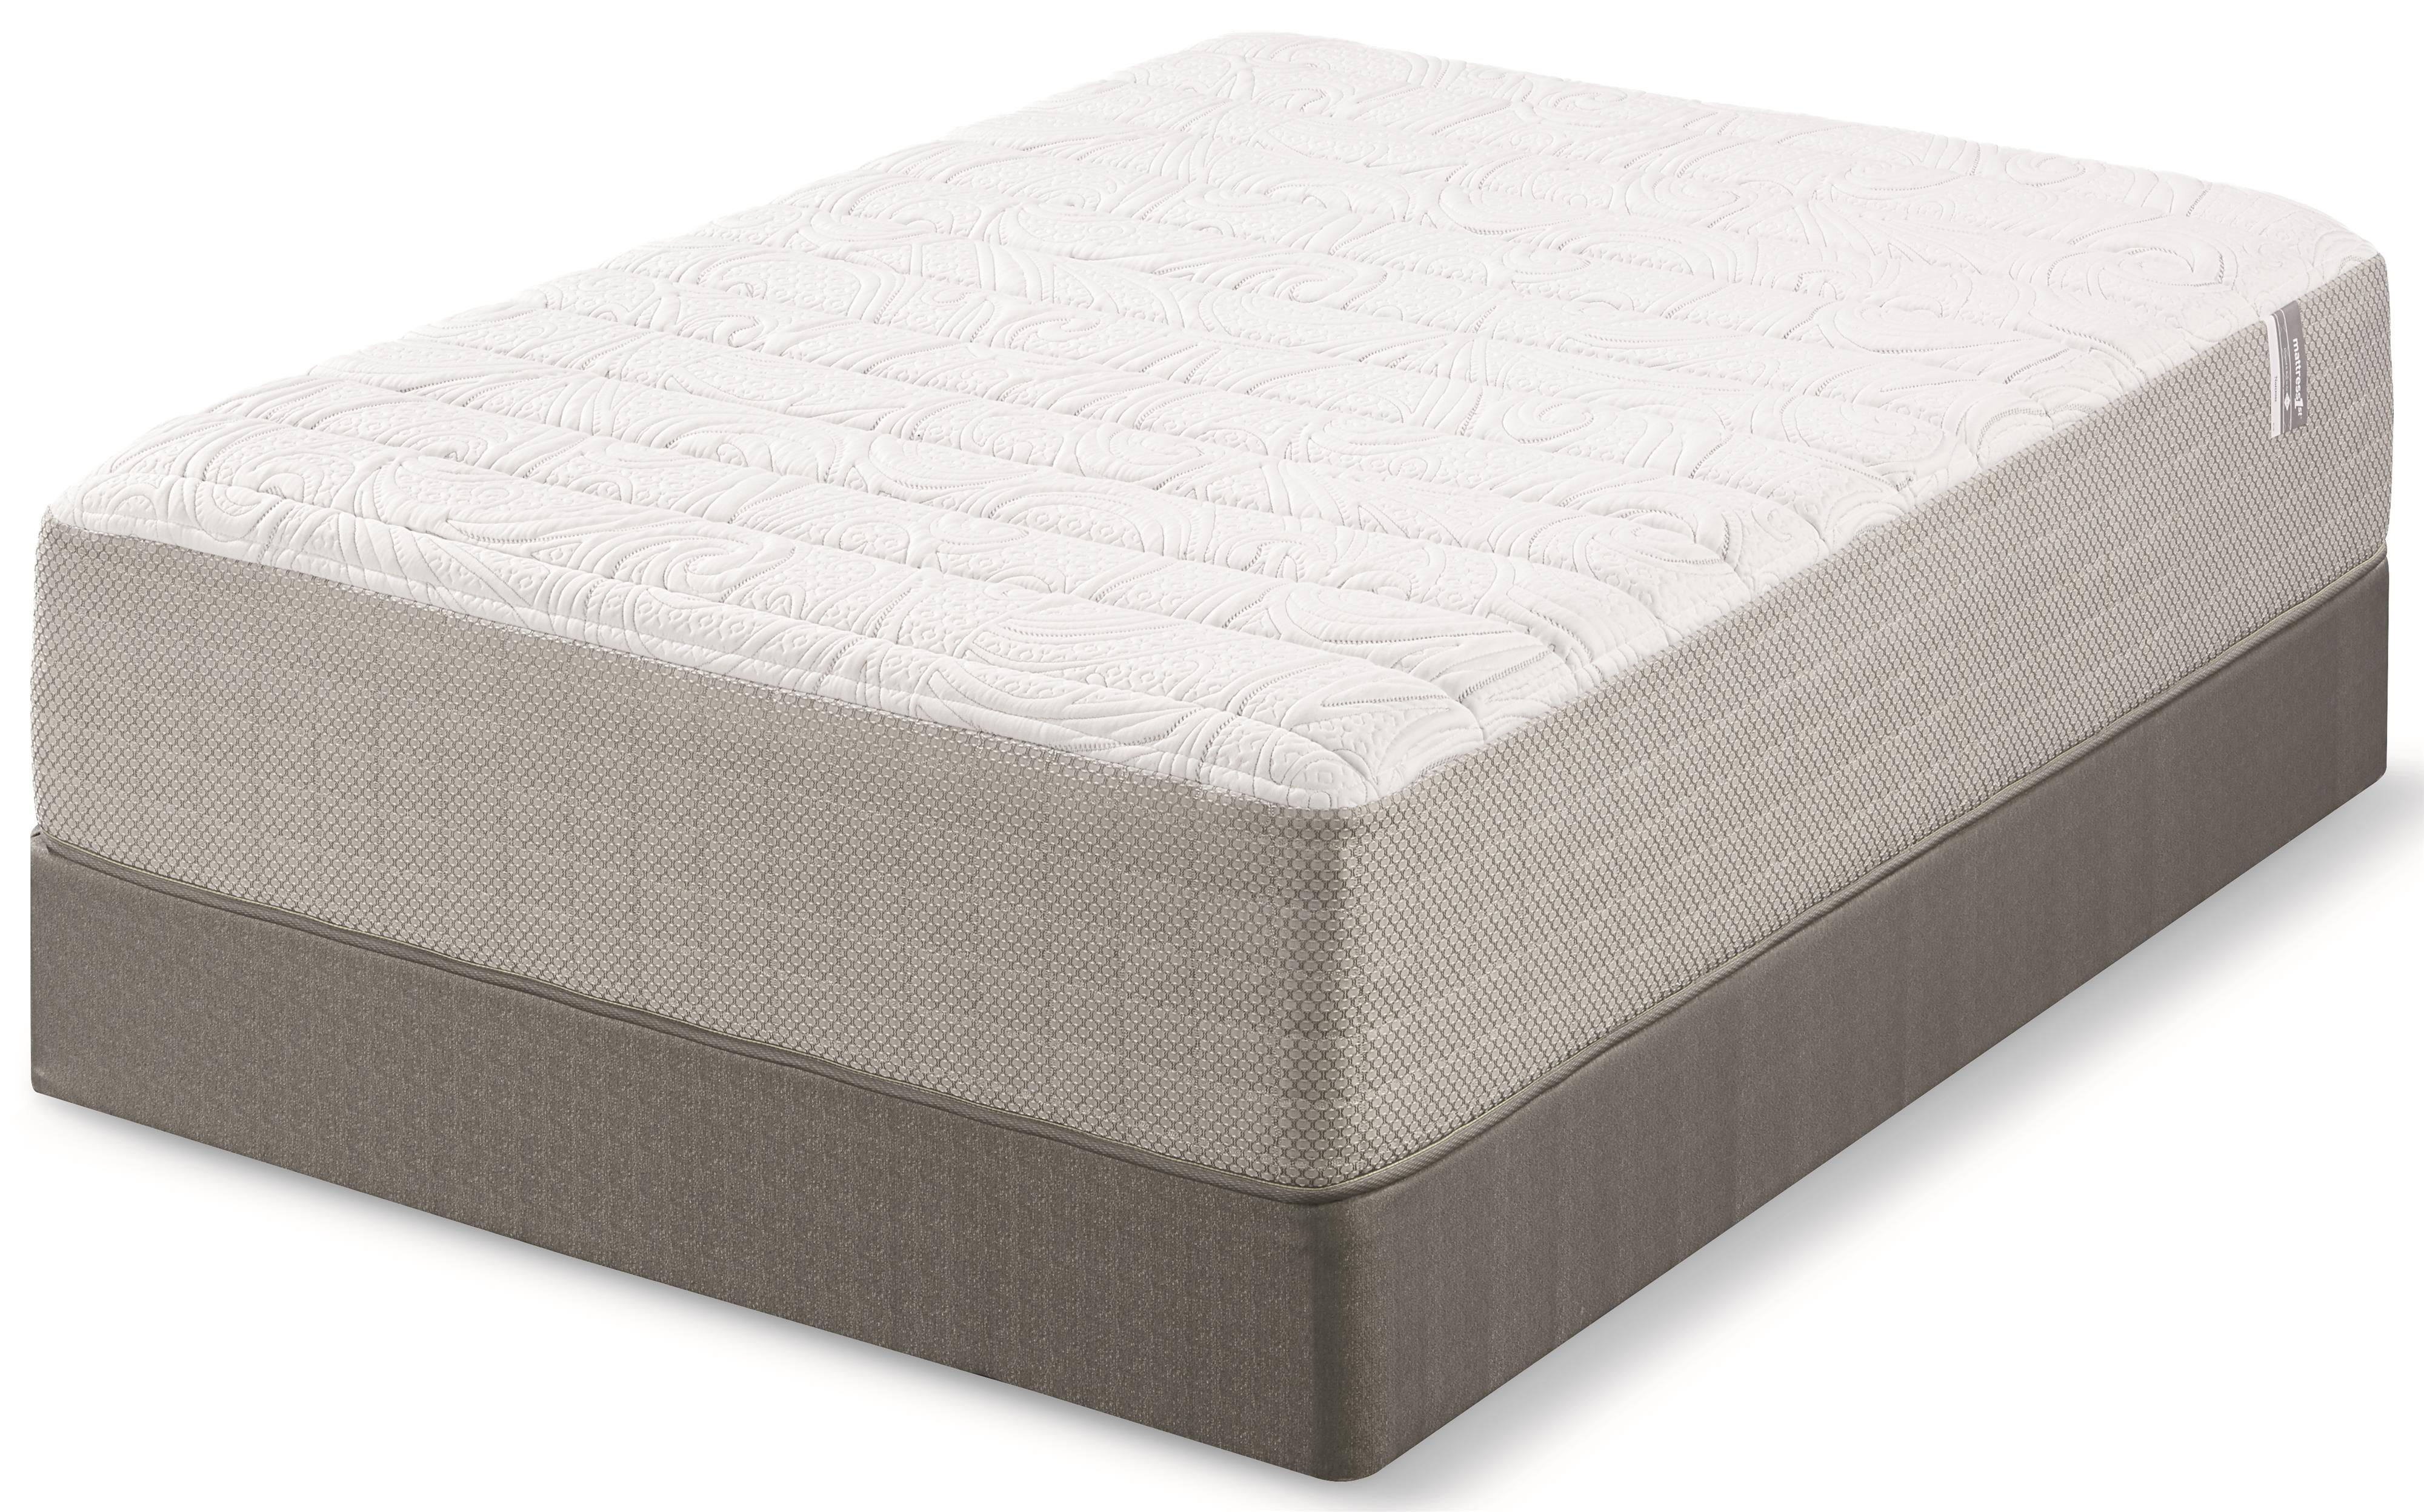 Mattress 1st Norcross King Plush Memory Foam Mattress - Item Number: 500951132-K